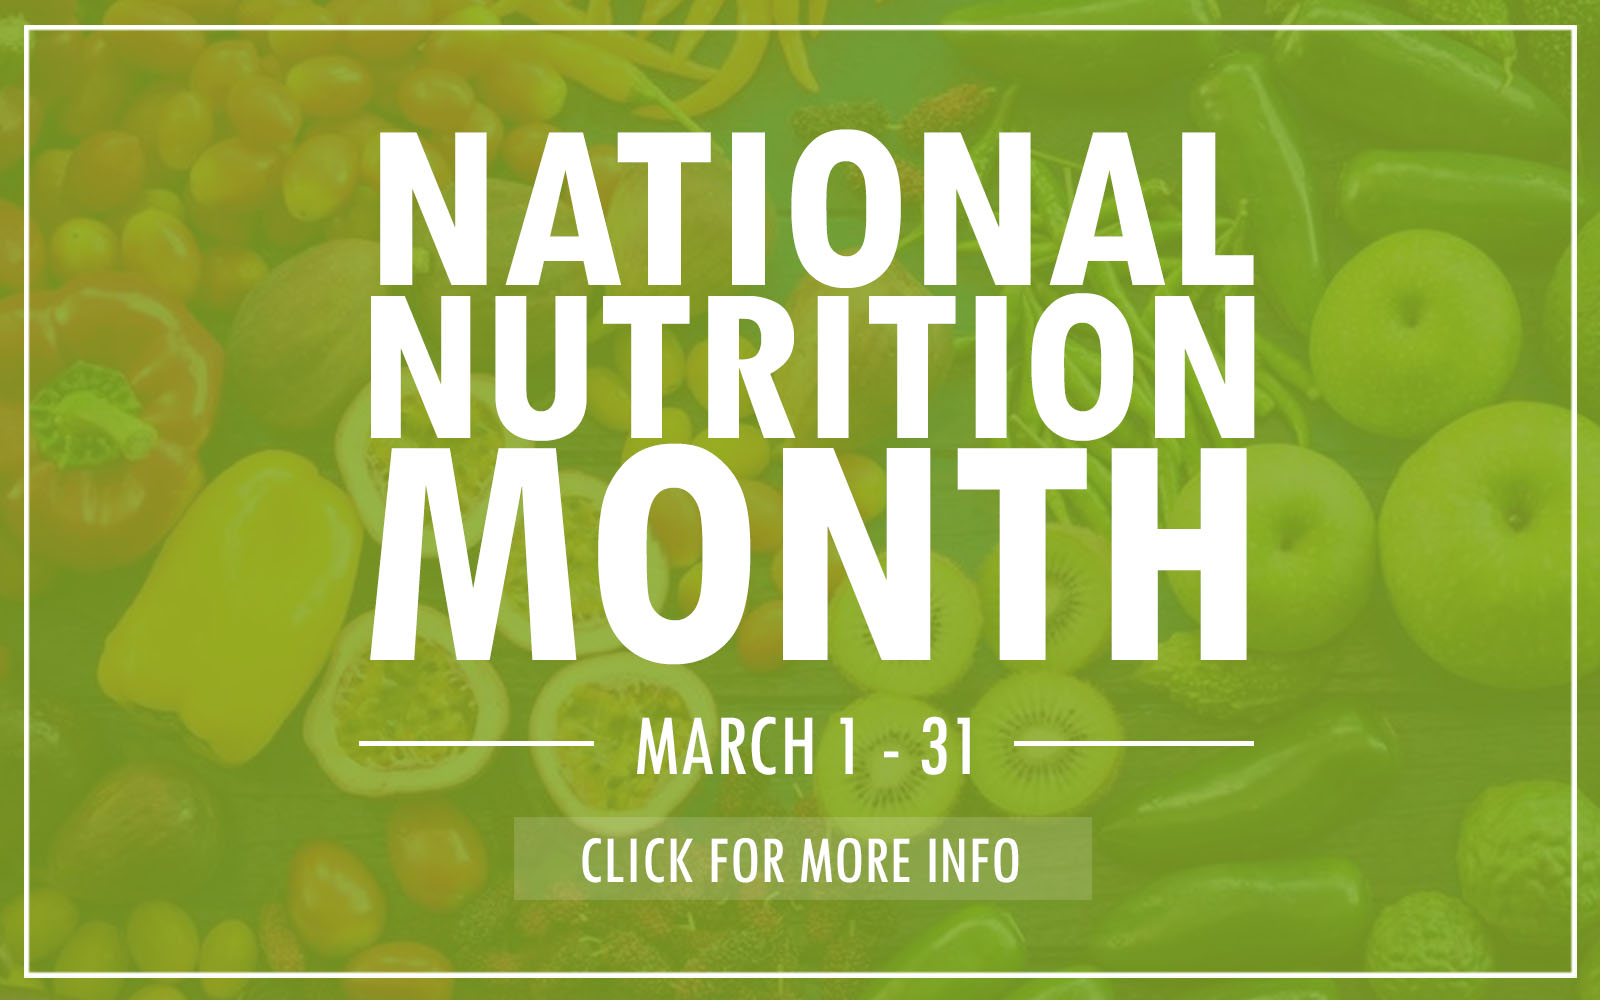 National Nutrition Month Website Slider